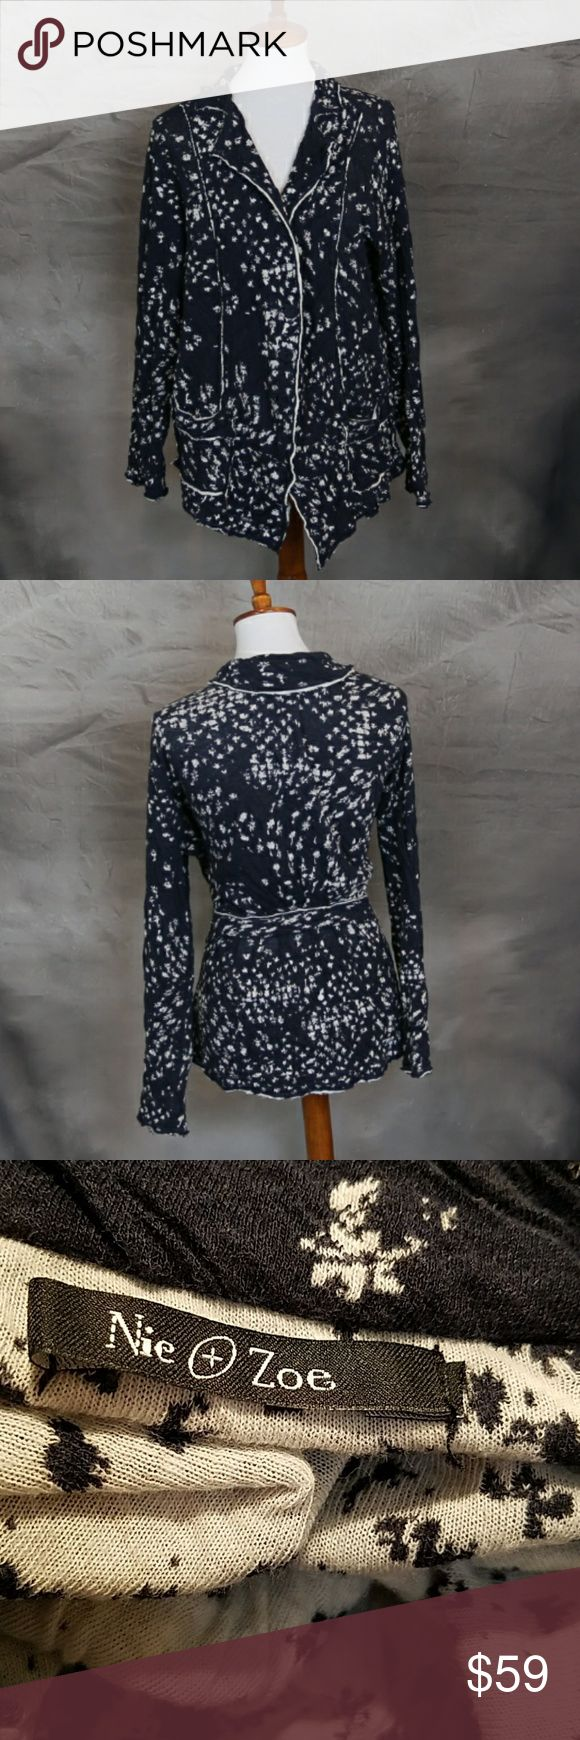 Nic & Zoe navy & white 100% cotton jersey blazer L Nic and Zoe navy & white 100% cotton jersey blazer jacket. In good condition aside from a missing size tag. This is a large. NIC + ZOE Jackets & Coats Blazers